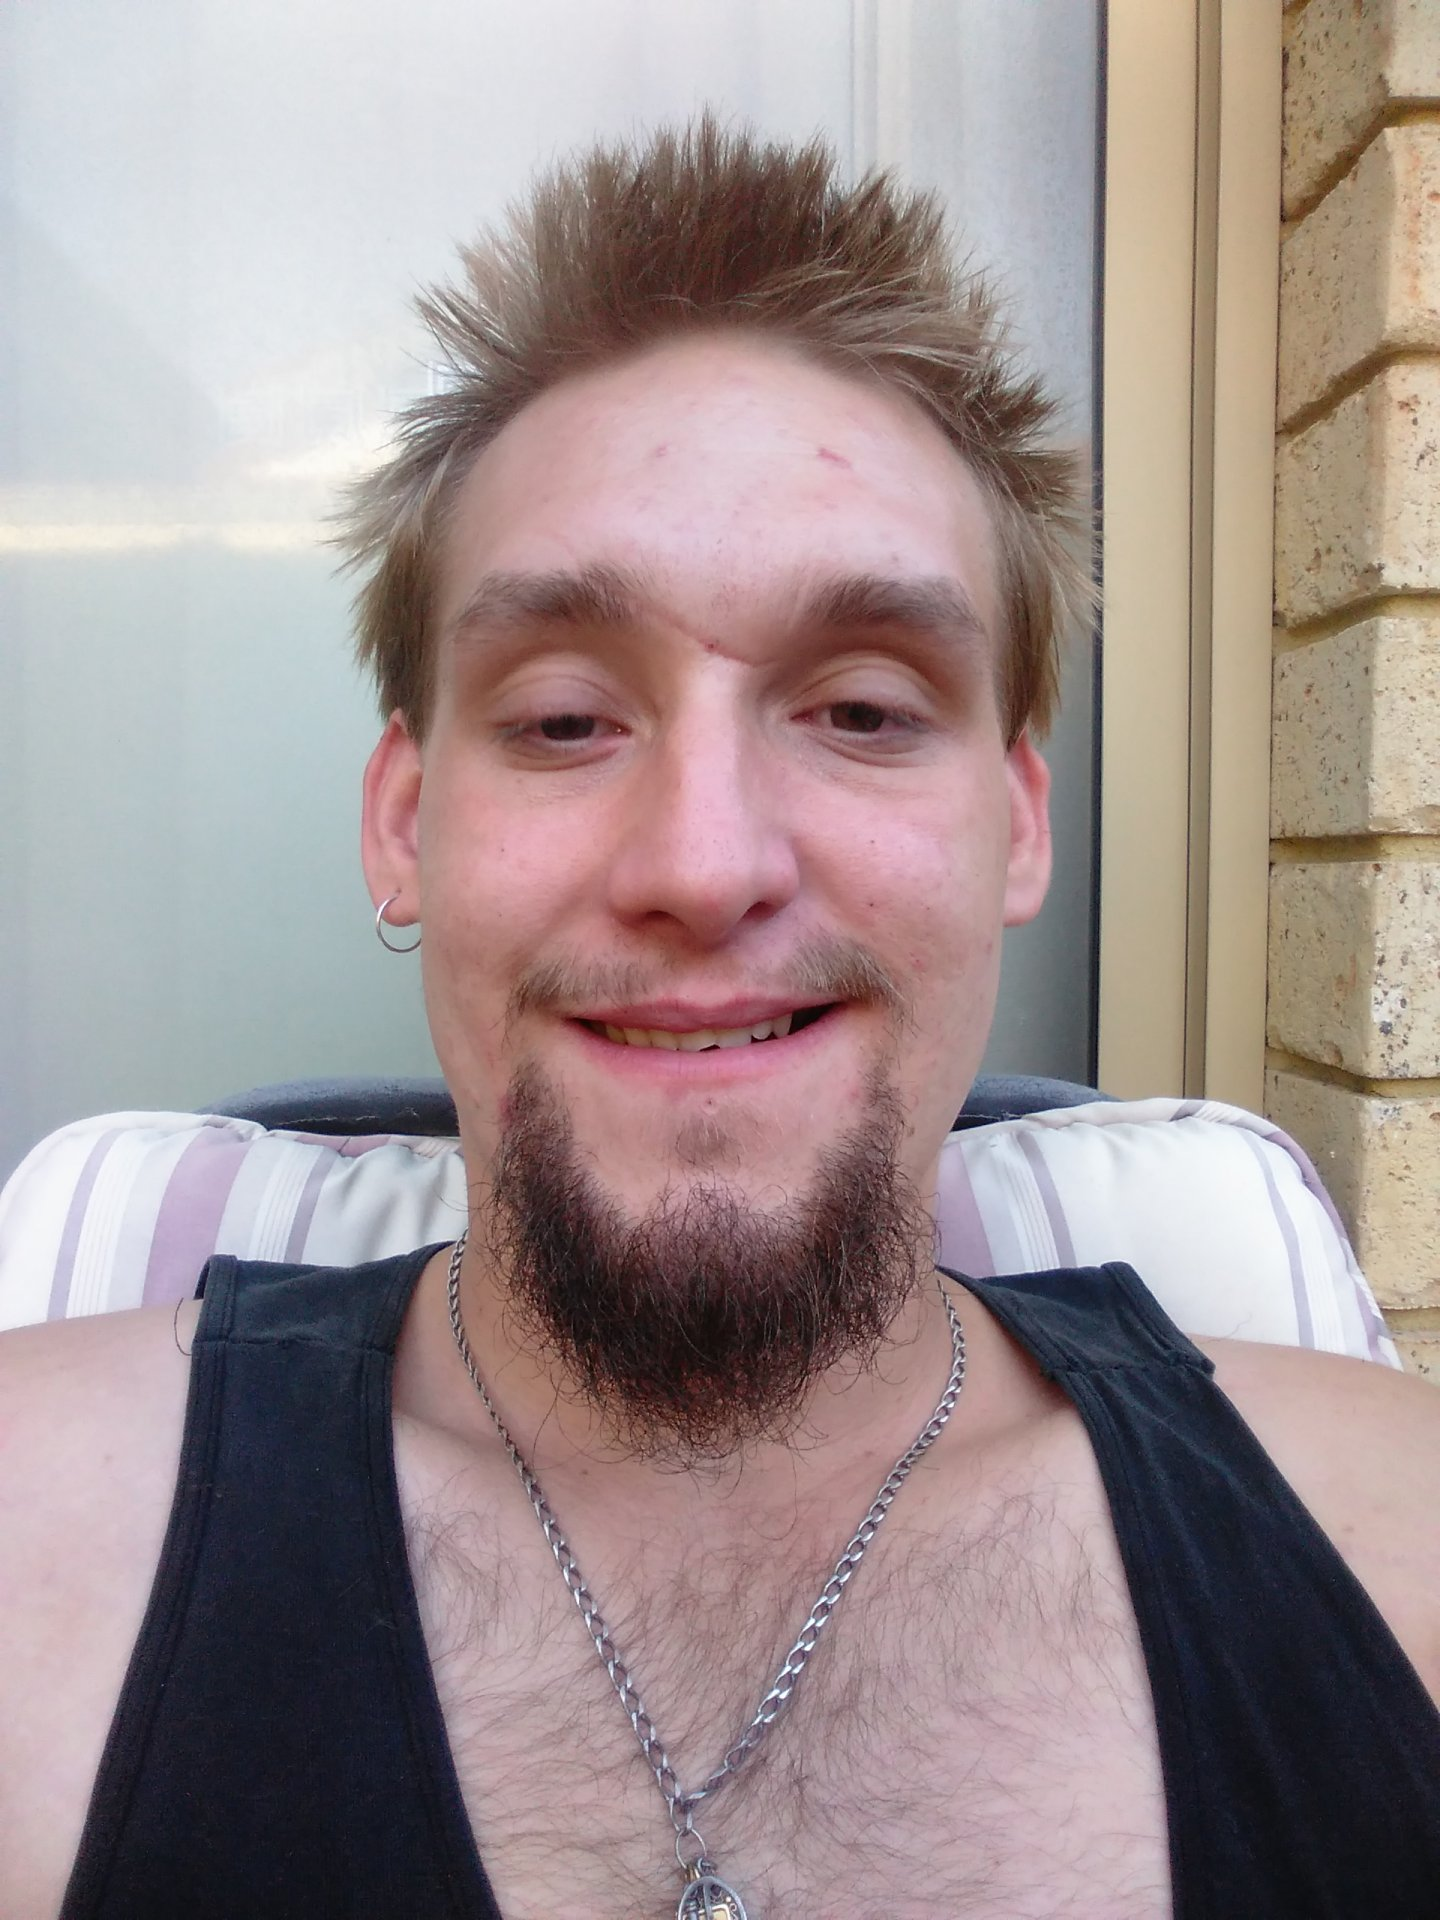 Andy351 from New South Wales,Australia